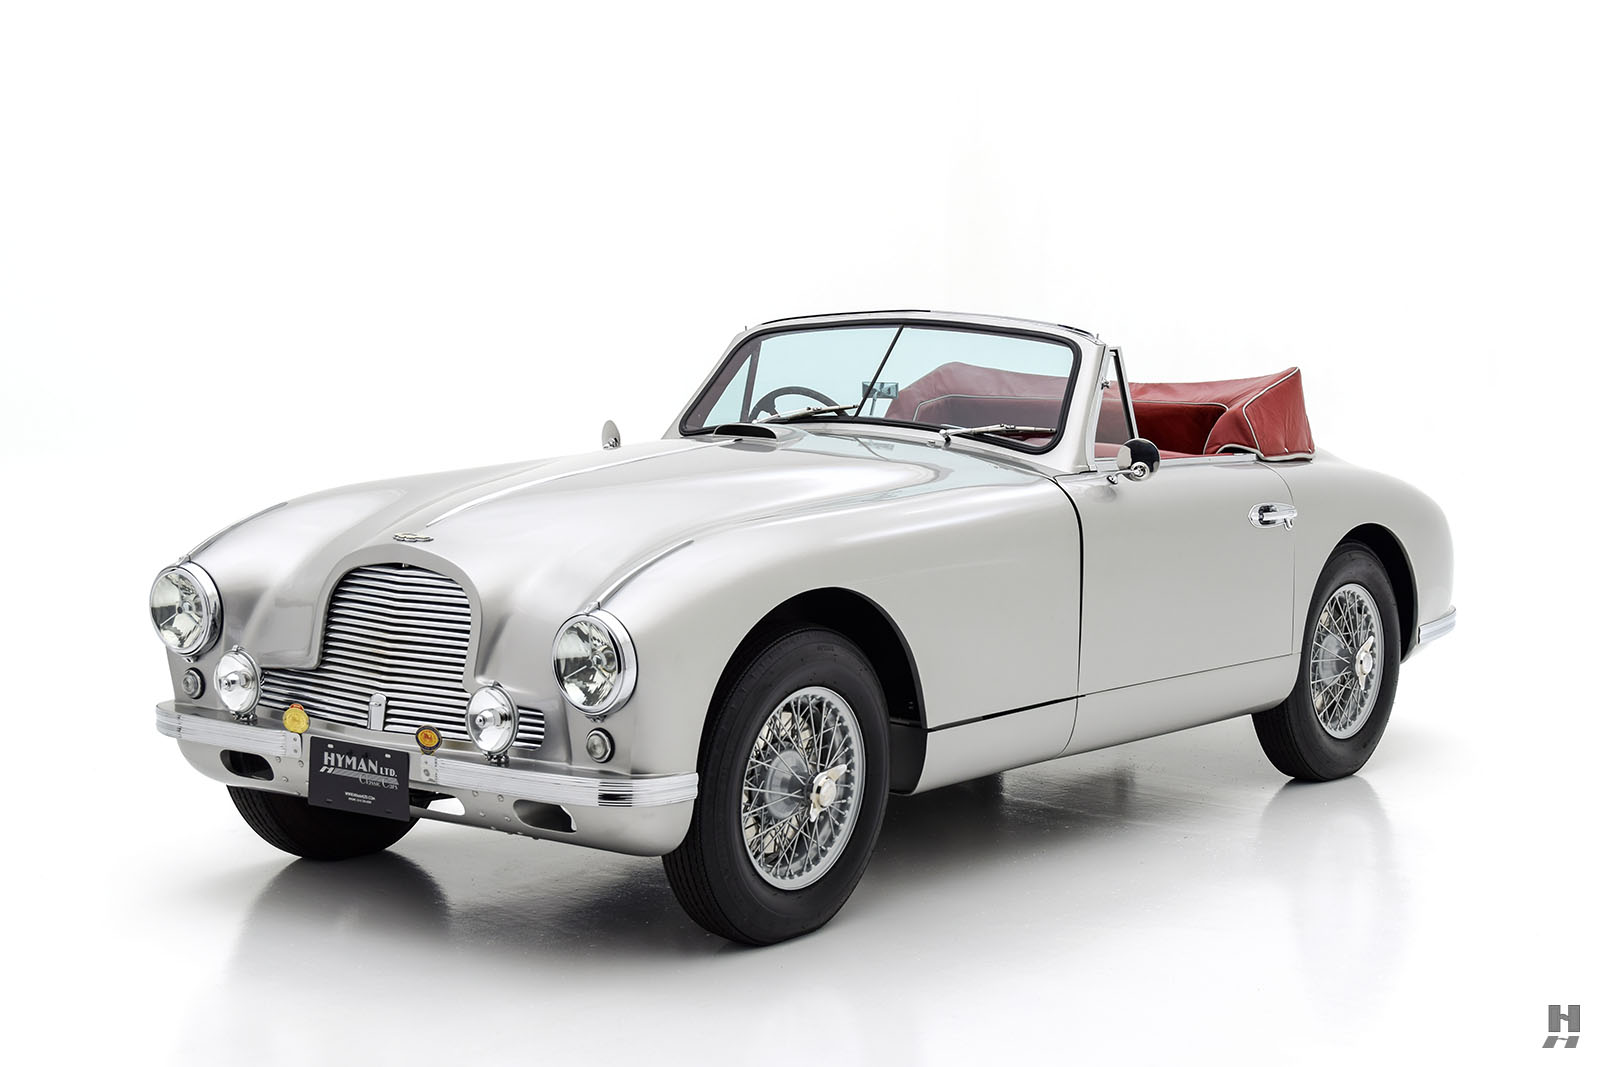 1952 aston martin db2 drophead coupe for sale hyman classic cars rh hymanltd com